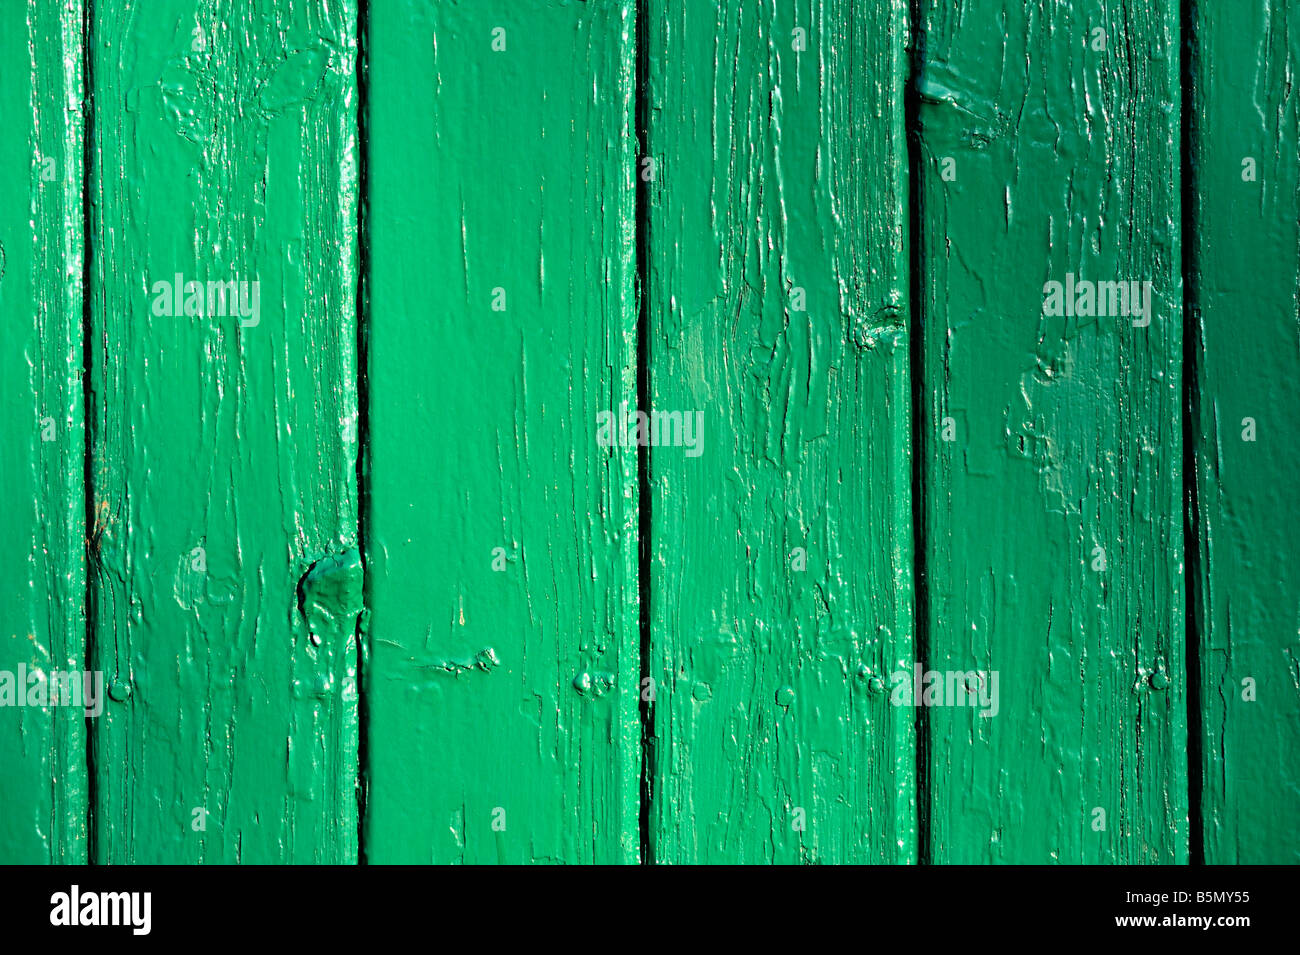 Green painted wooden wall - Stock Image